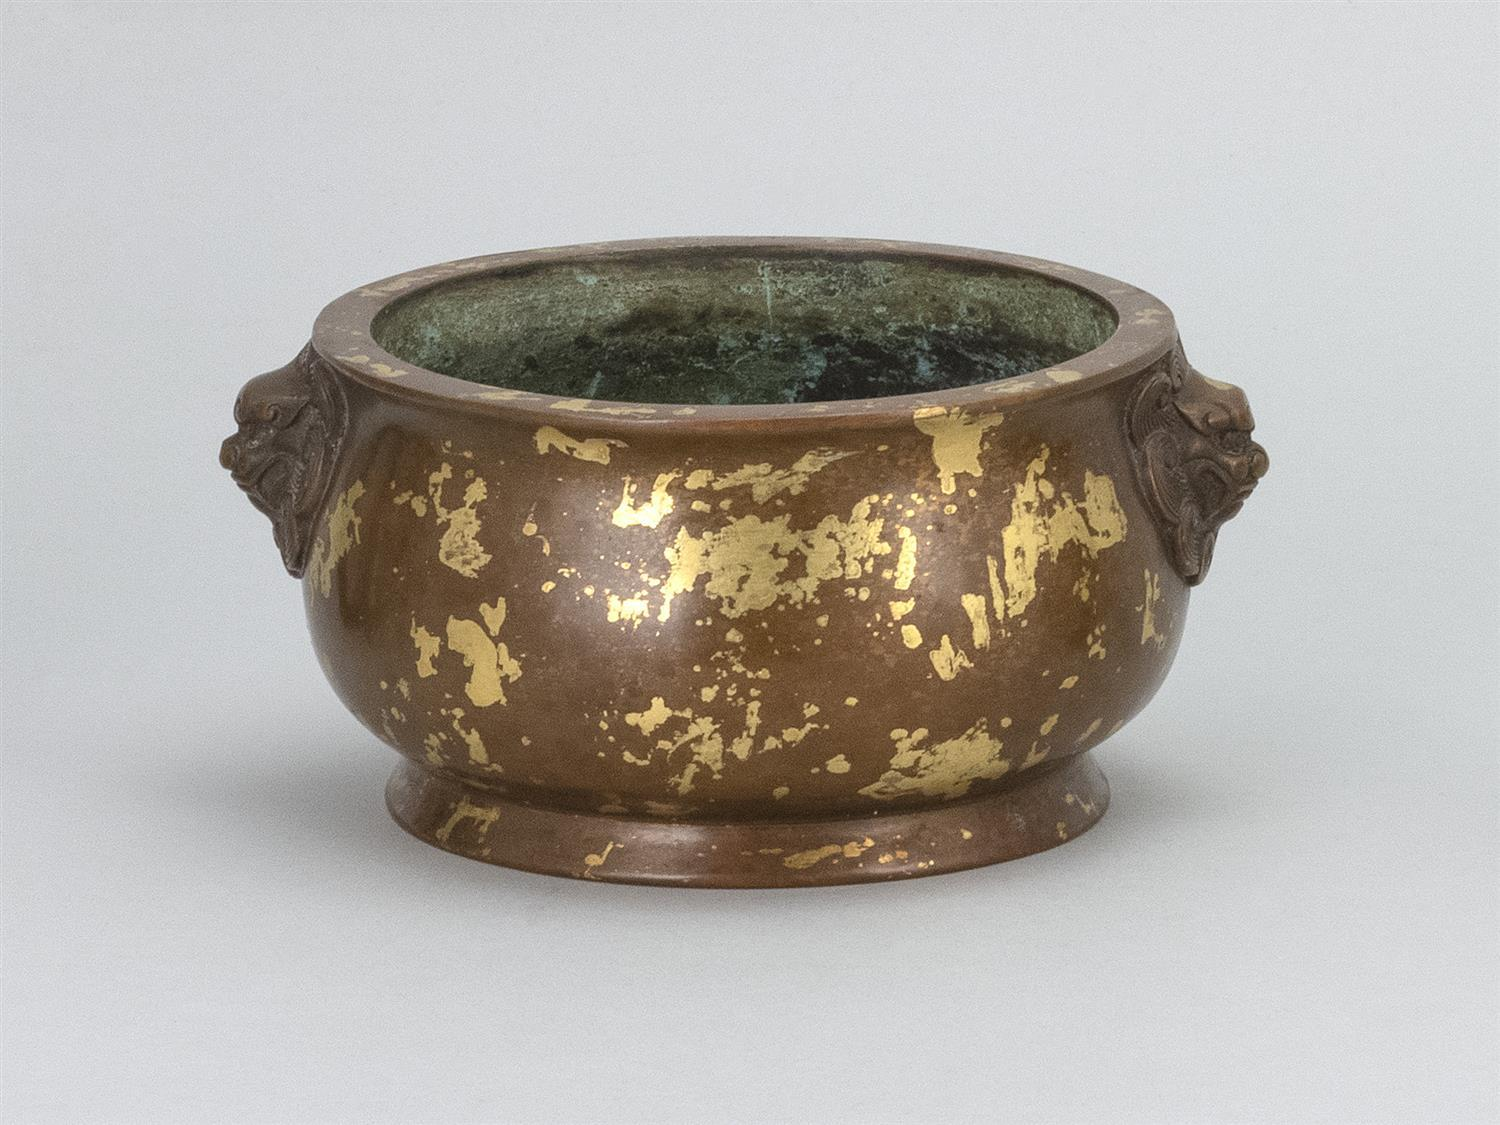 CHINESE SUNSPOT BRONZE CENSER In squat ovoid form, applied mask handles and gilt splashes on a bronze ground. Four-character Xuande...